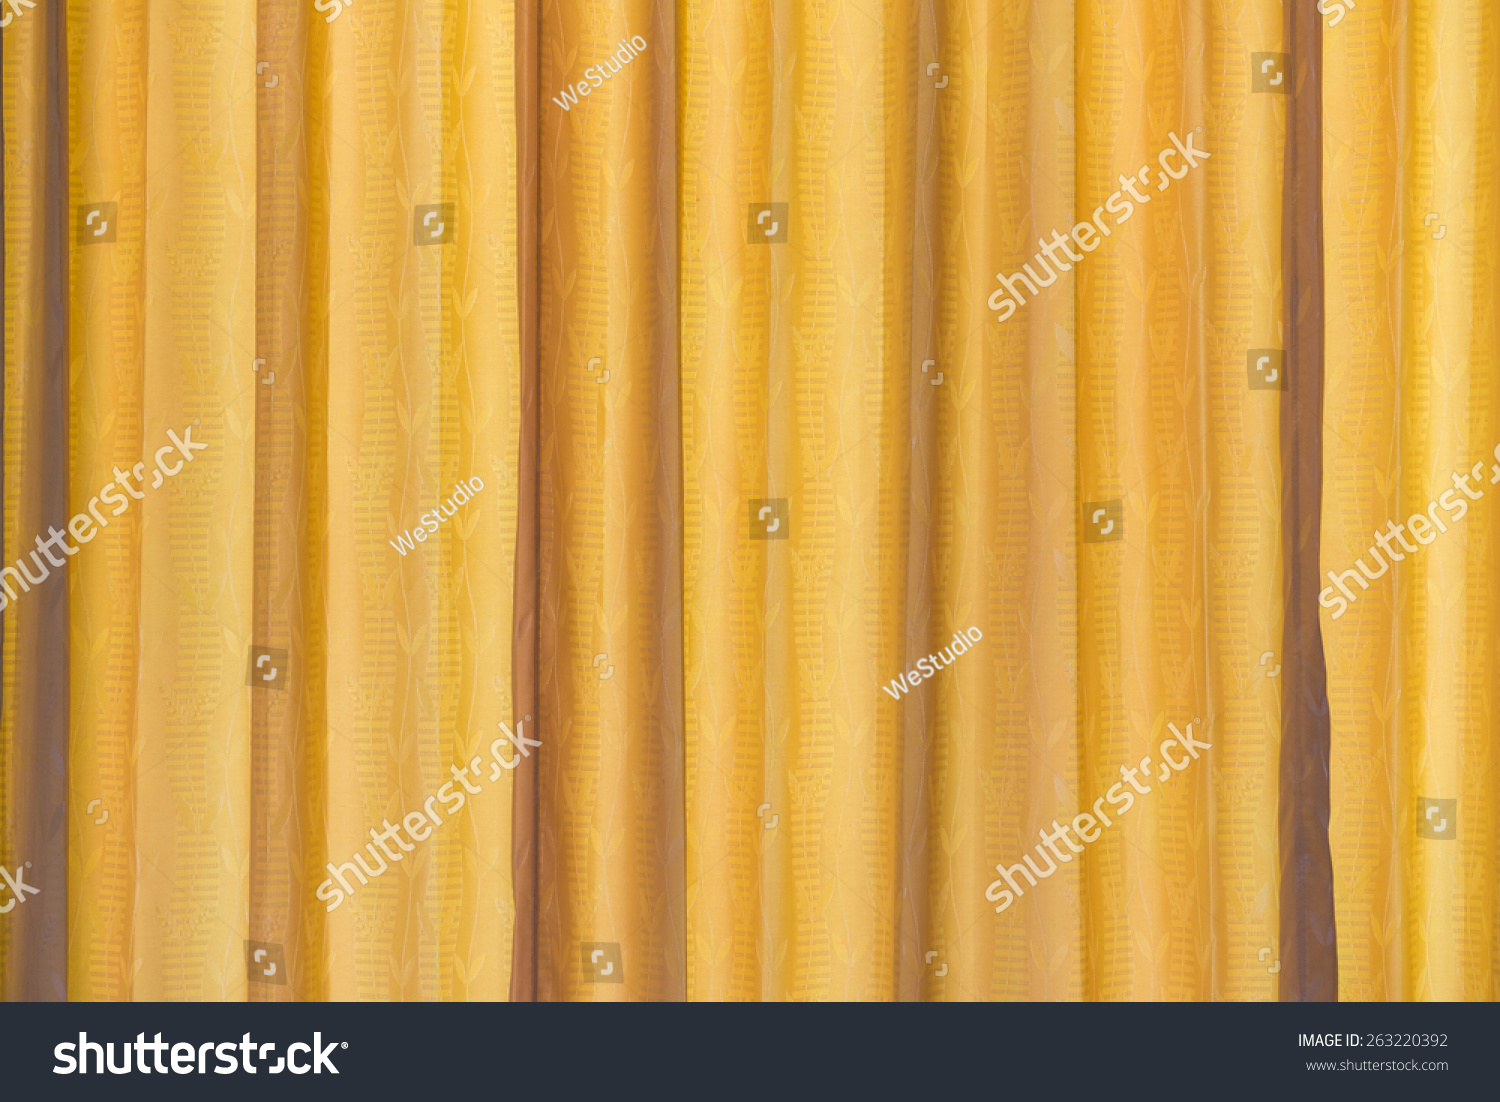 Yellow Curtain Fabric Texture Background Stock Photo 263220392 ...